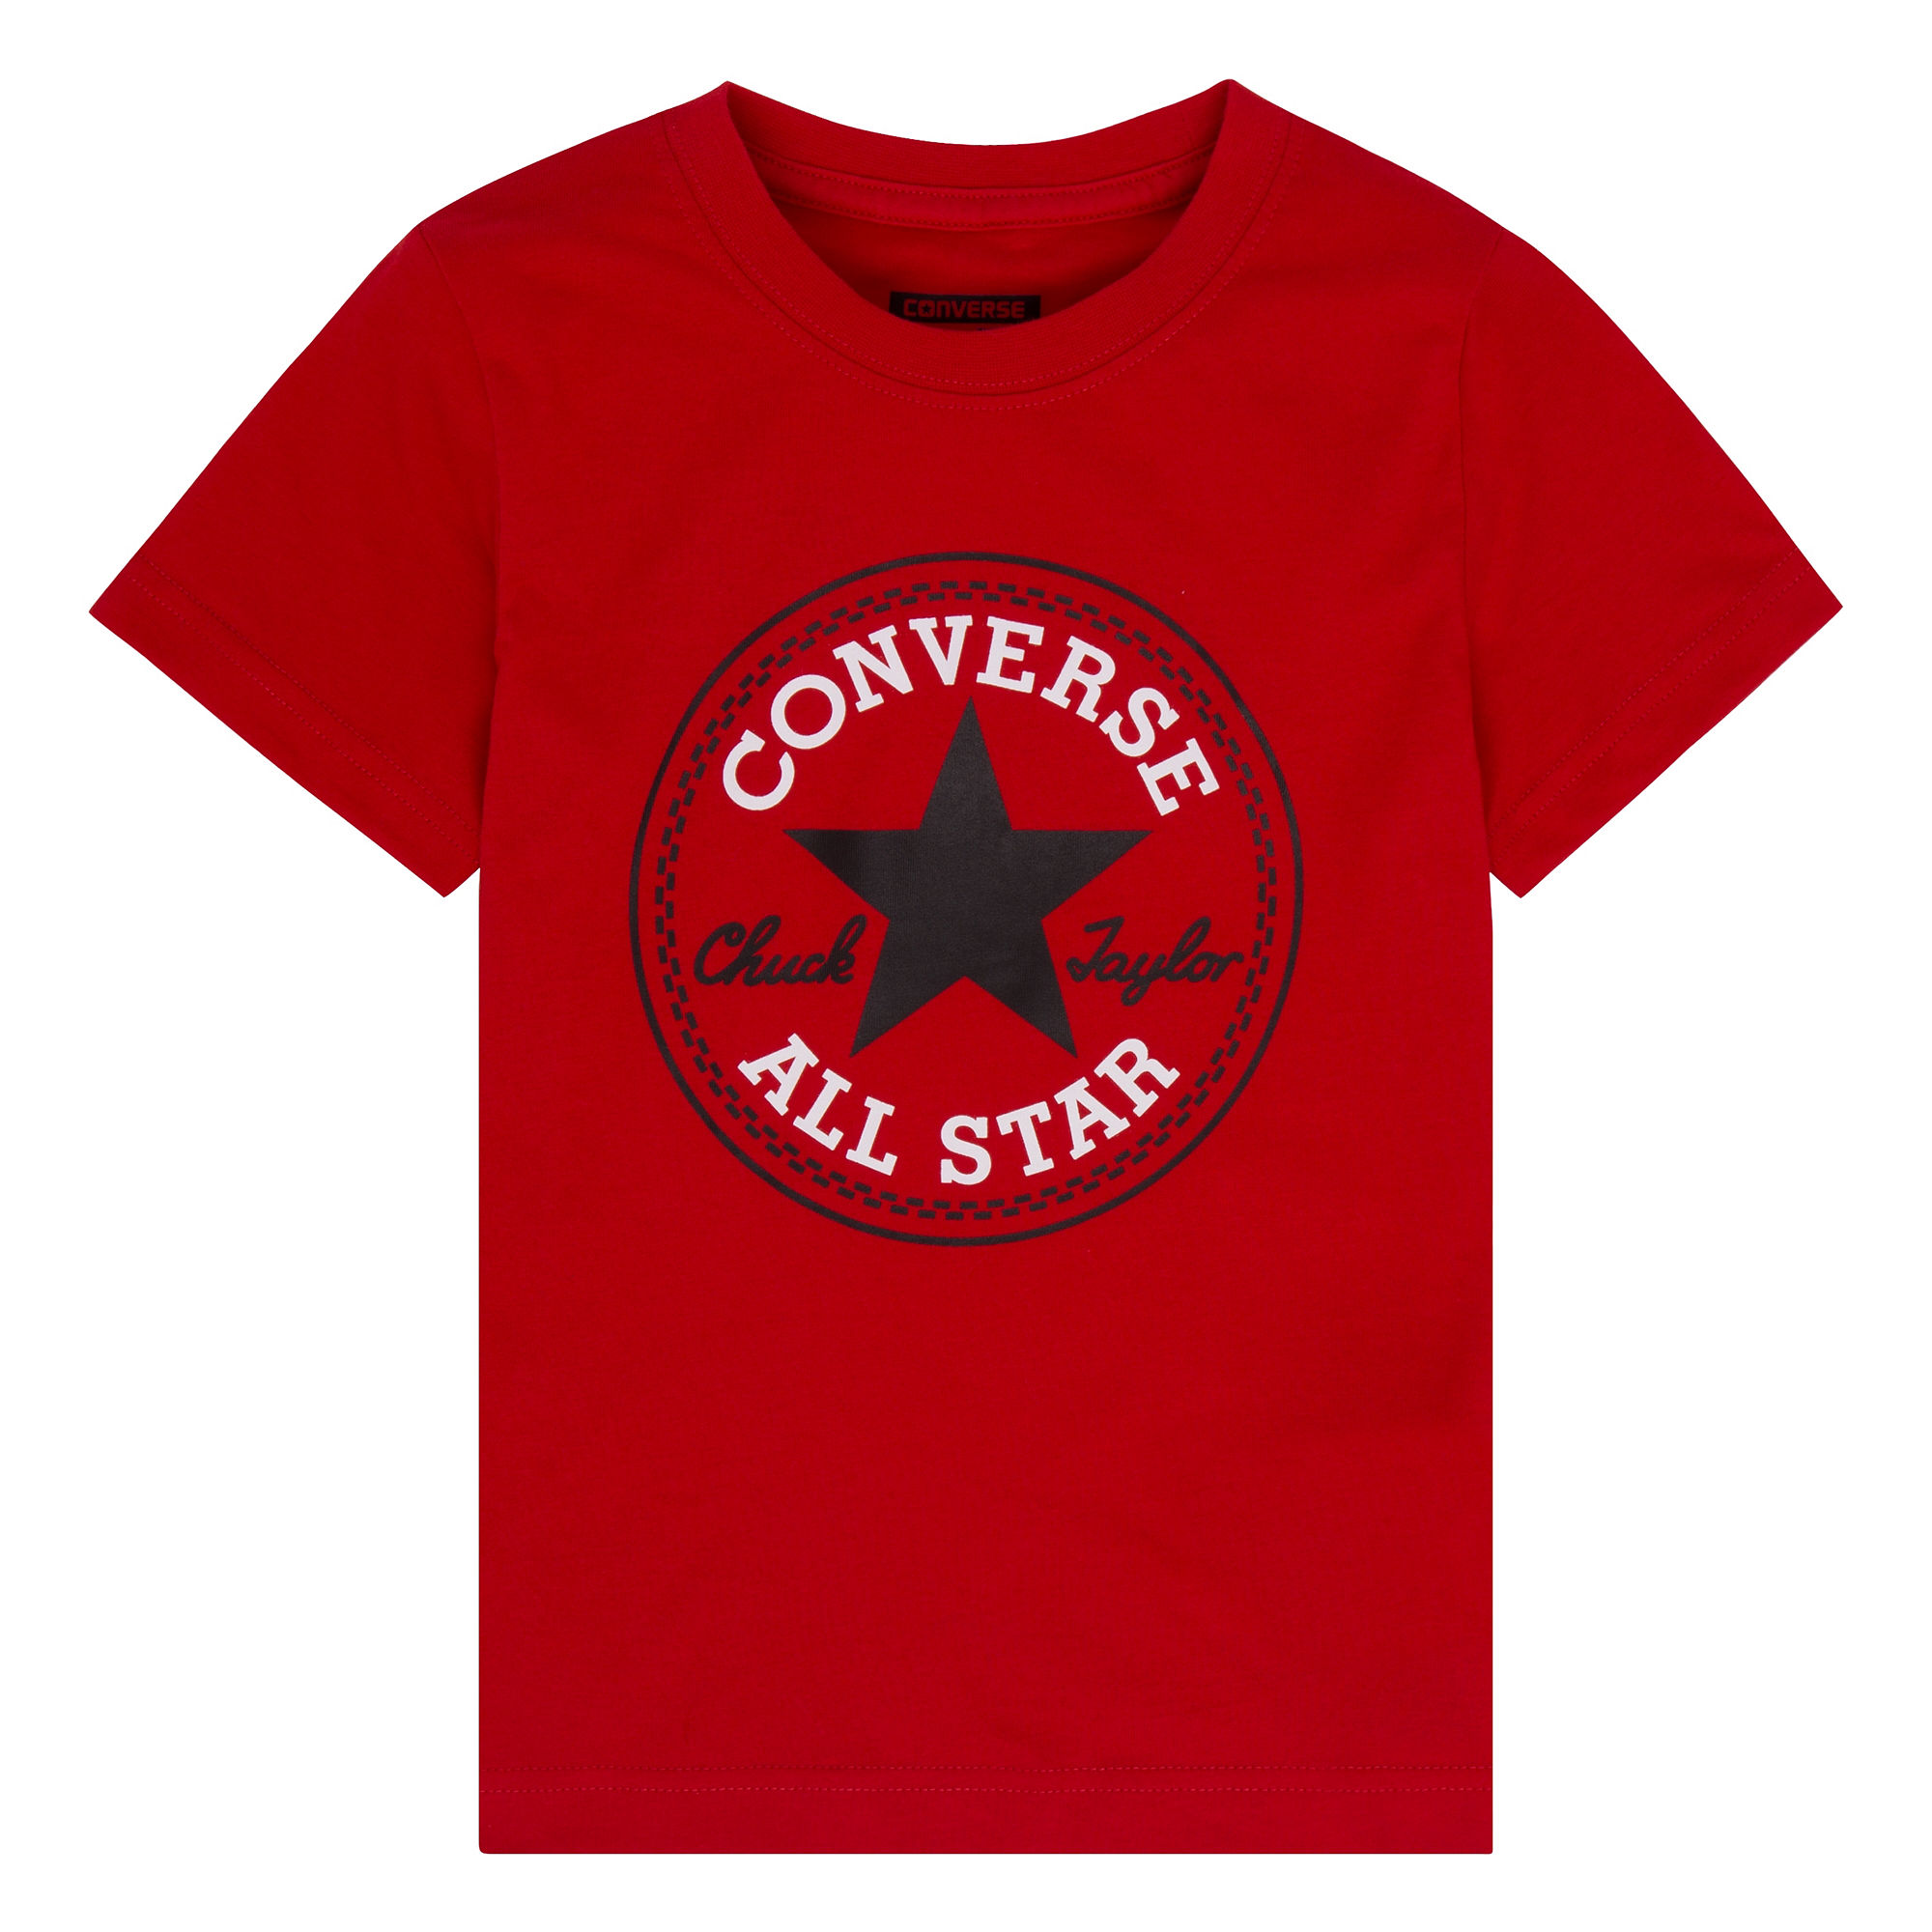 Converse Short Sleeve Patch Tshirt Preschool Boys 4 7 T Shirt | Shirts, Tops and Clothing